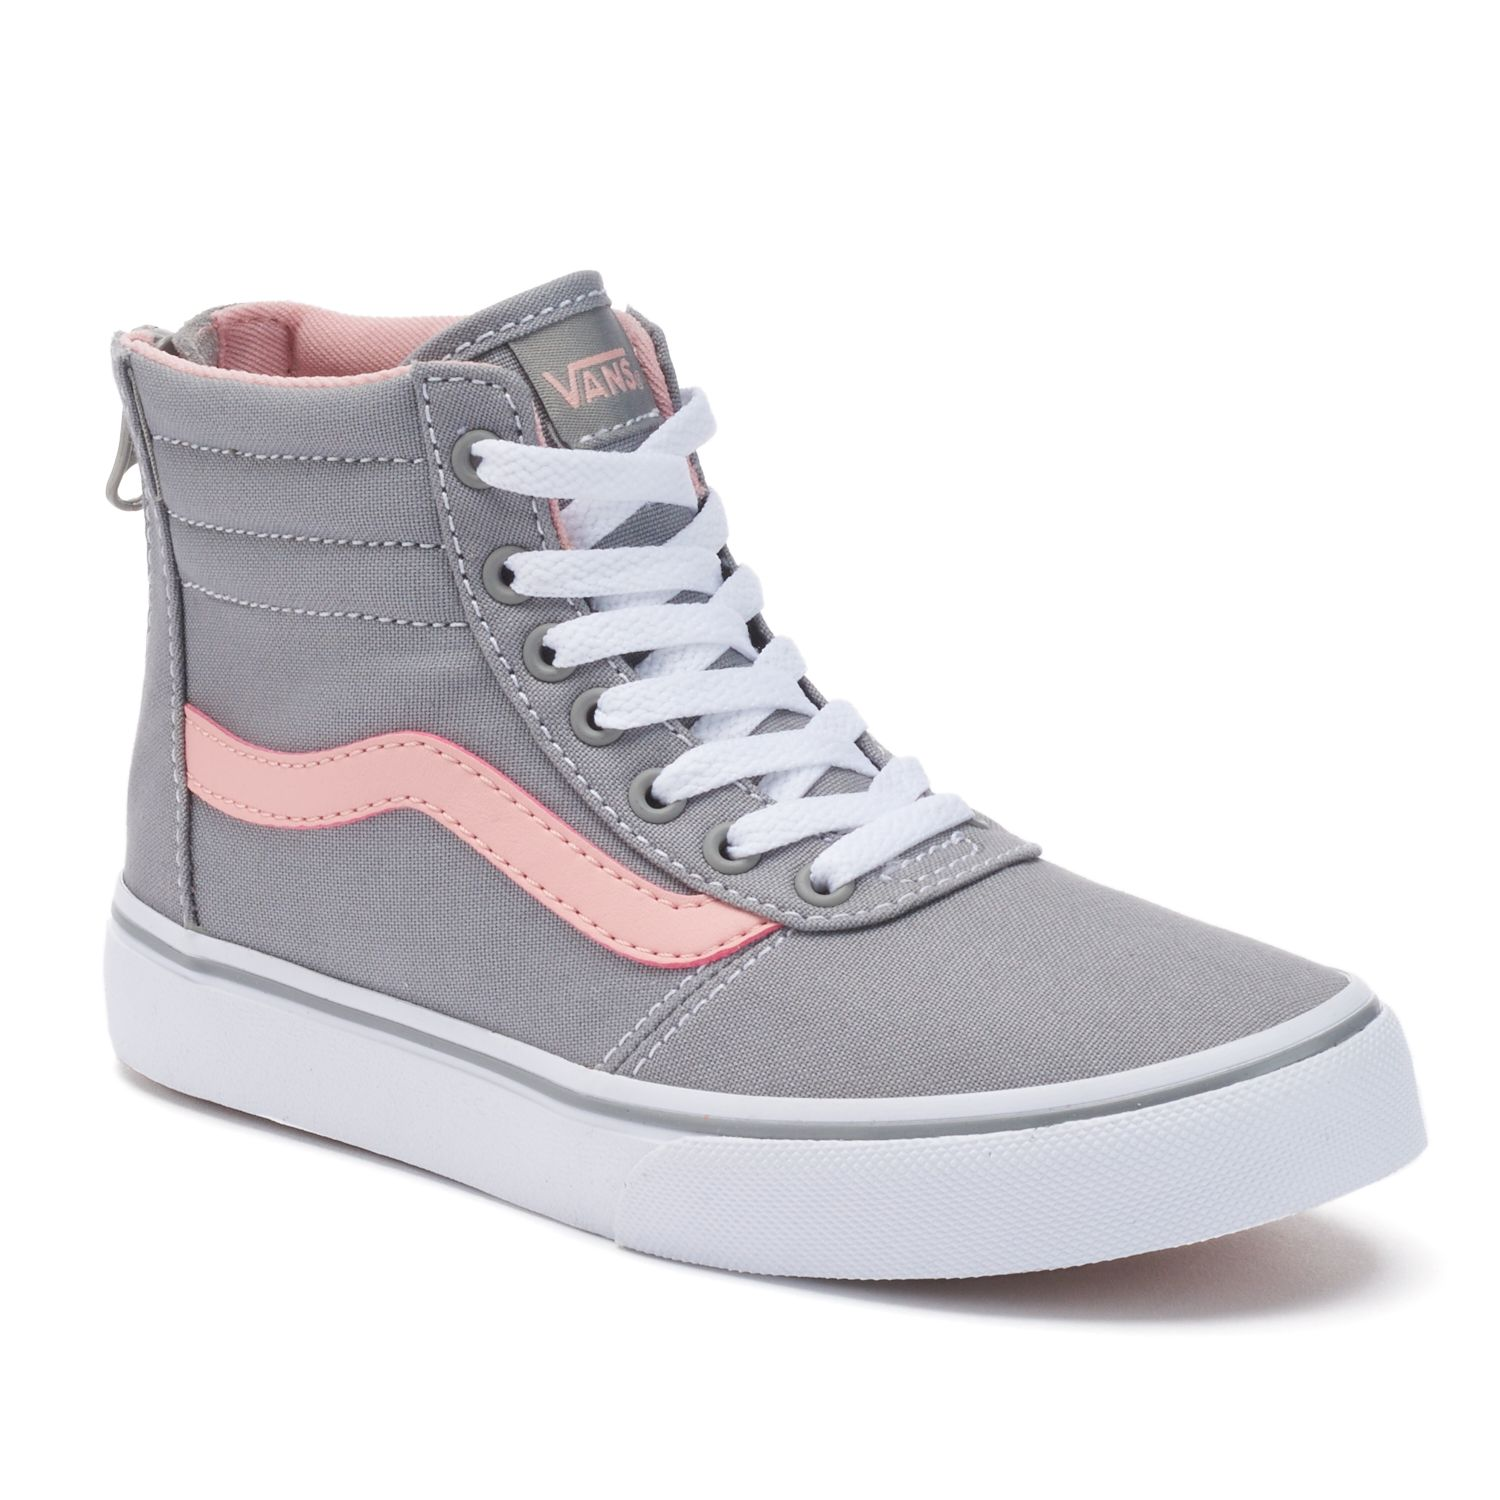 youth vans high tops